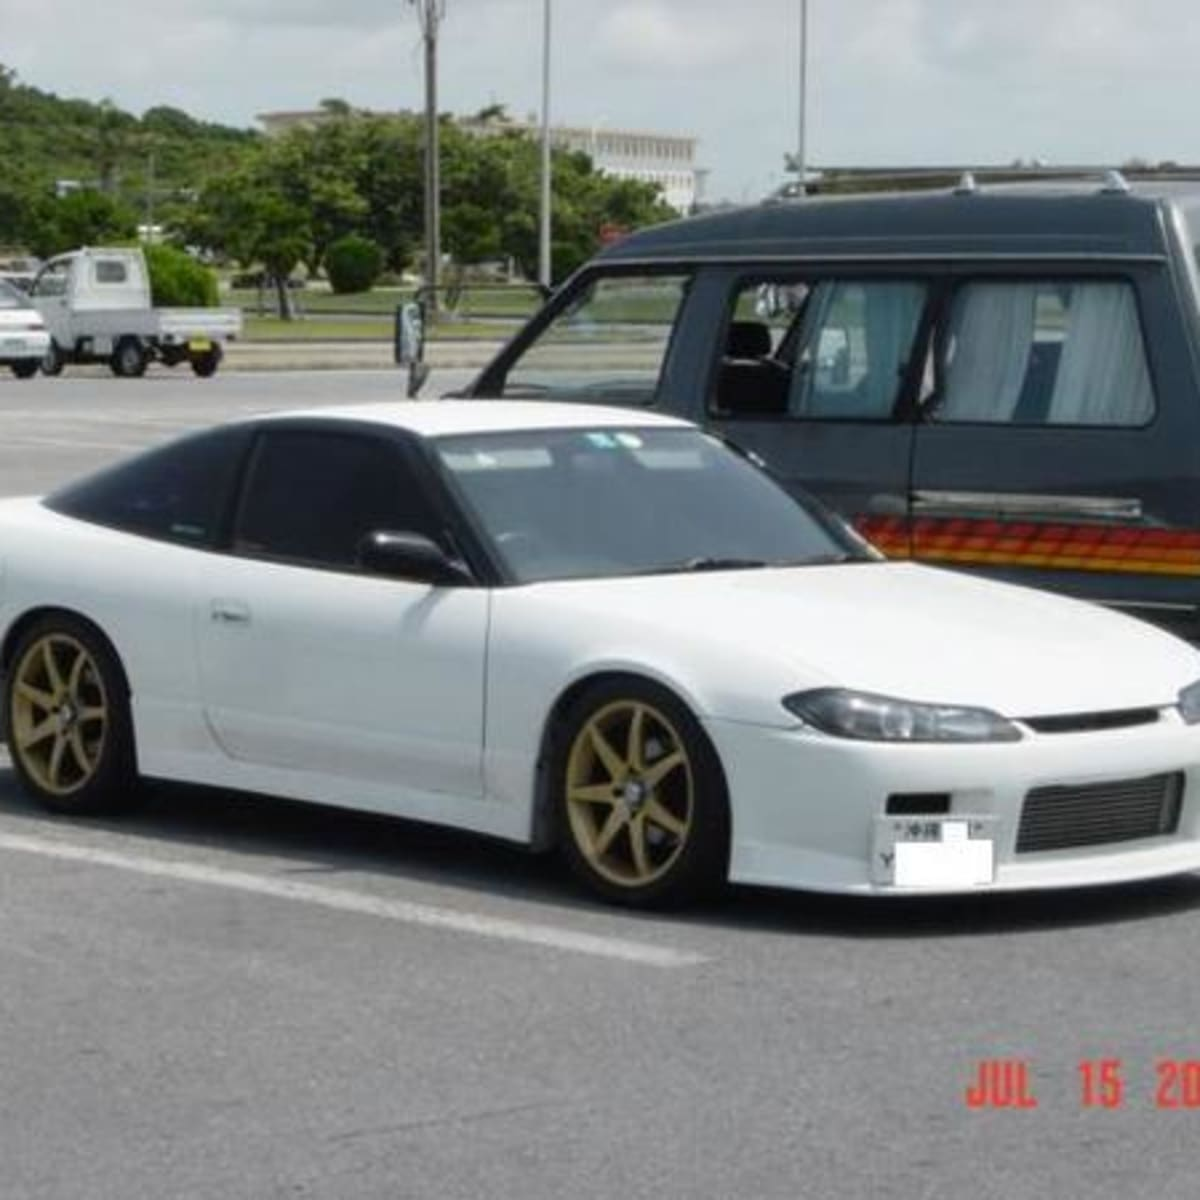 S15 Conversion Fitting An S15 Front End To A Nissan S13 Or S14 240sx Silvia 180sx Axleaddict A Community Of Car Lovers Enthusiasts And Mechanics Sharing Our Auto Advice